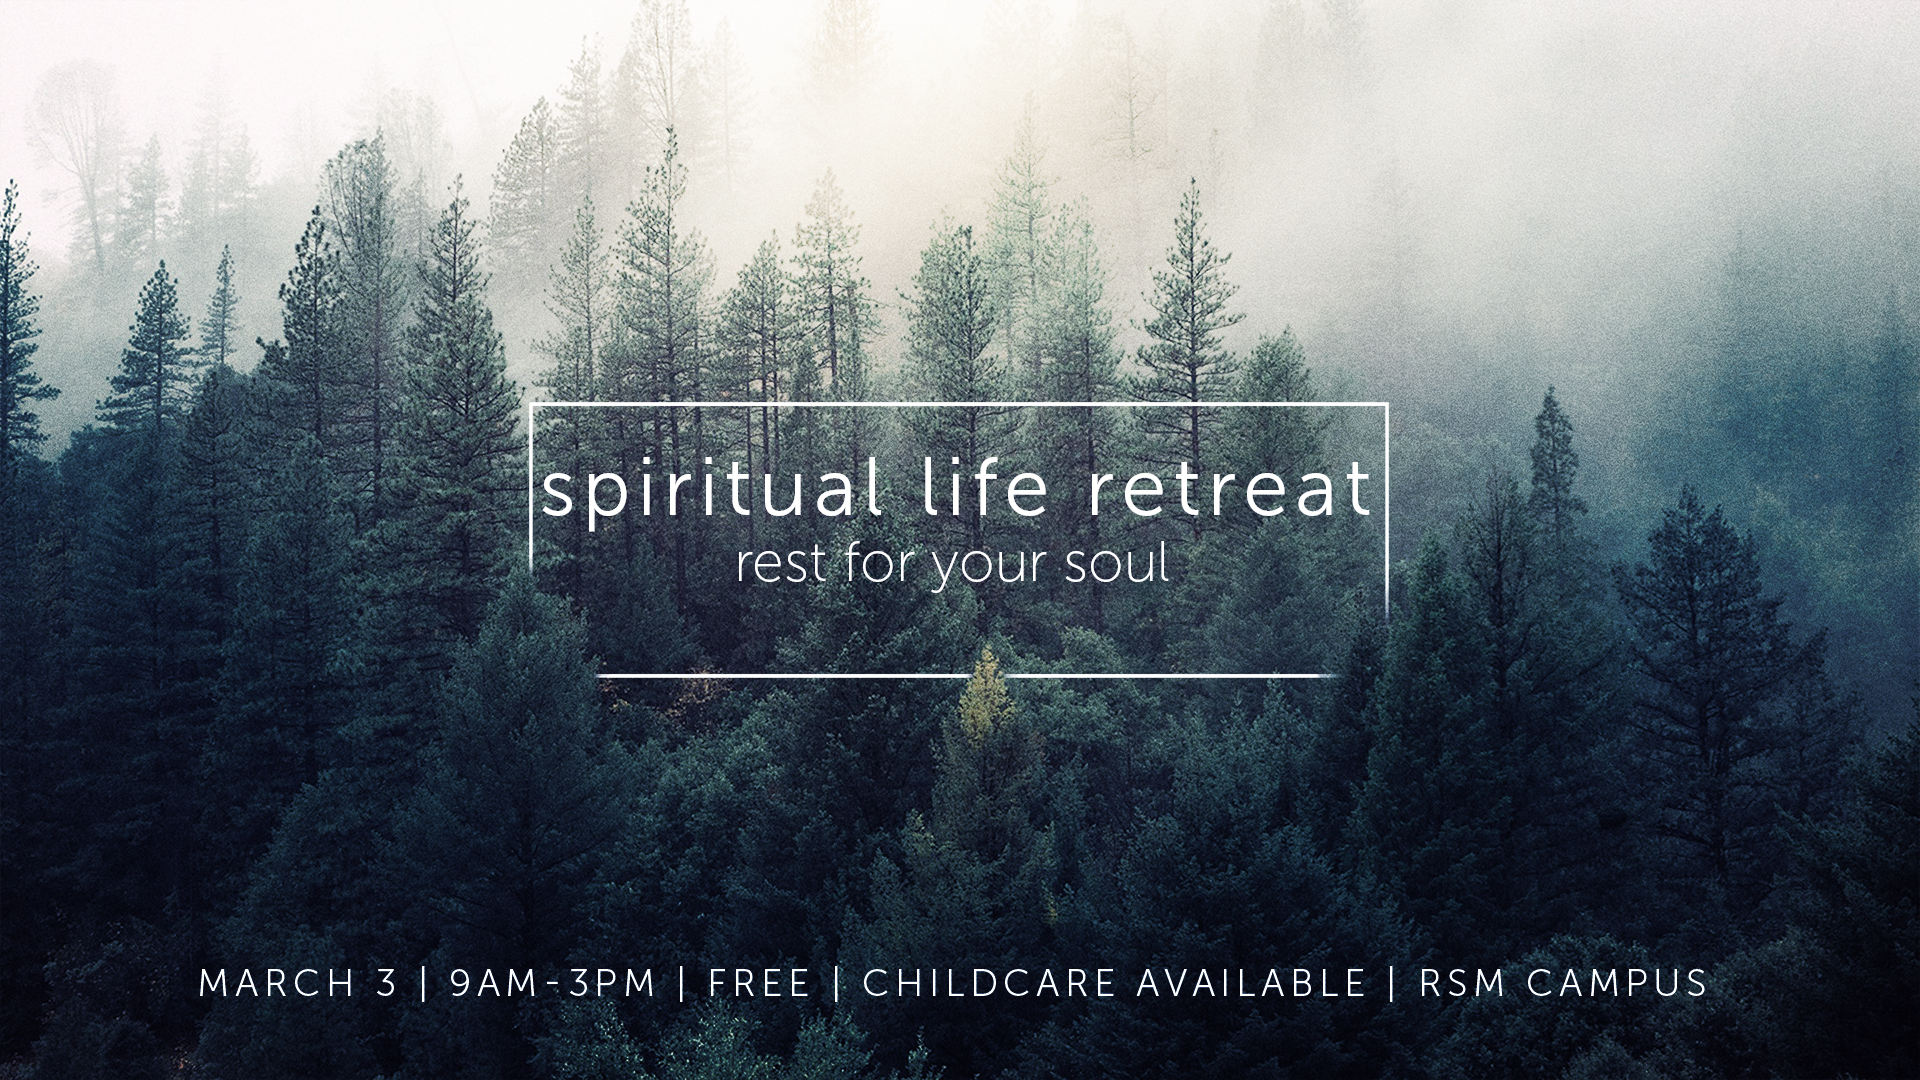 Spiritual life retreat